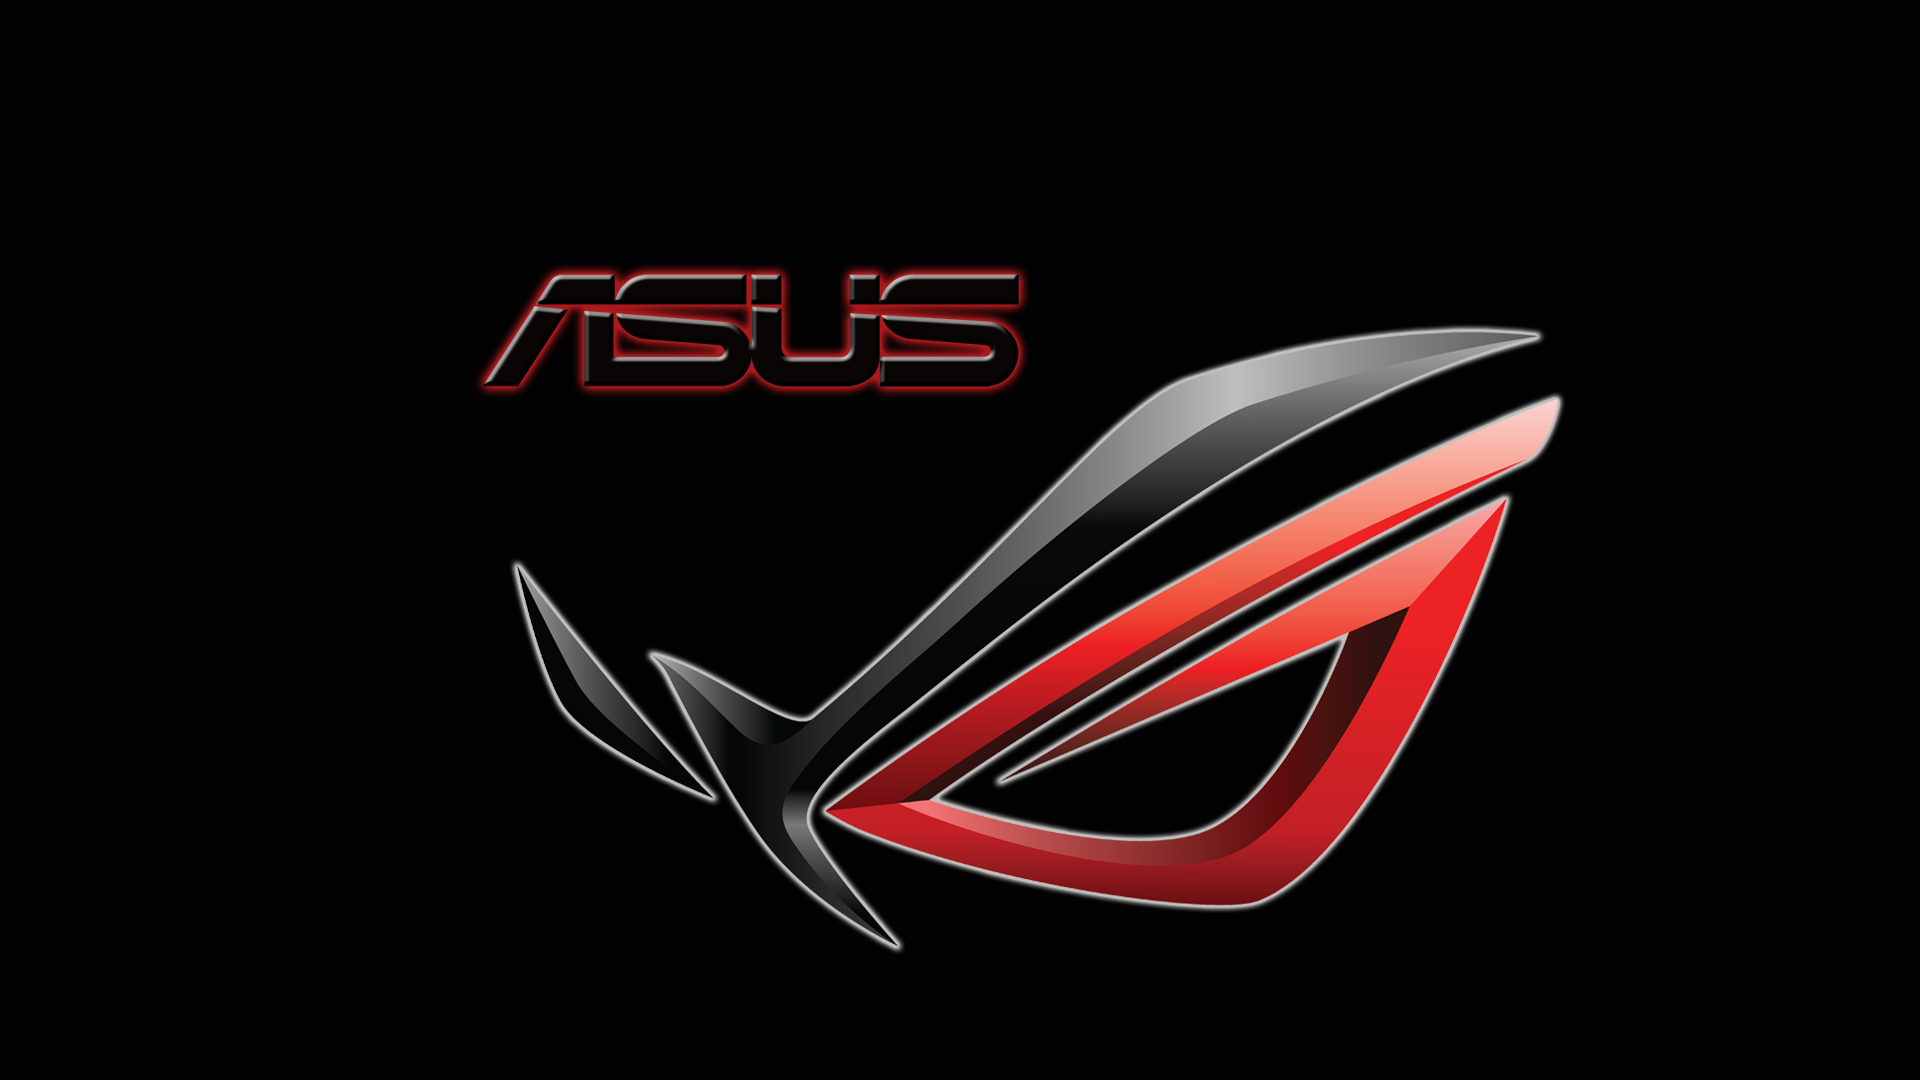 Asus HD Wallpaper | Background Image | 1920x1080 | ID ...